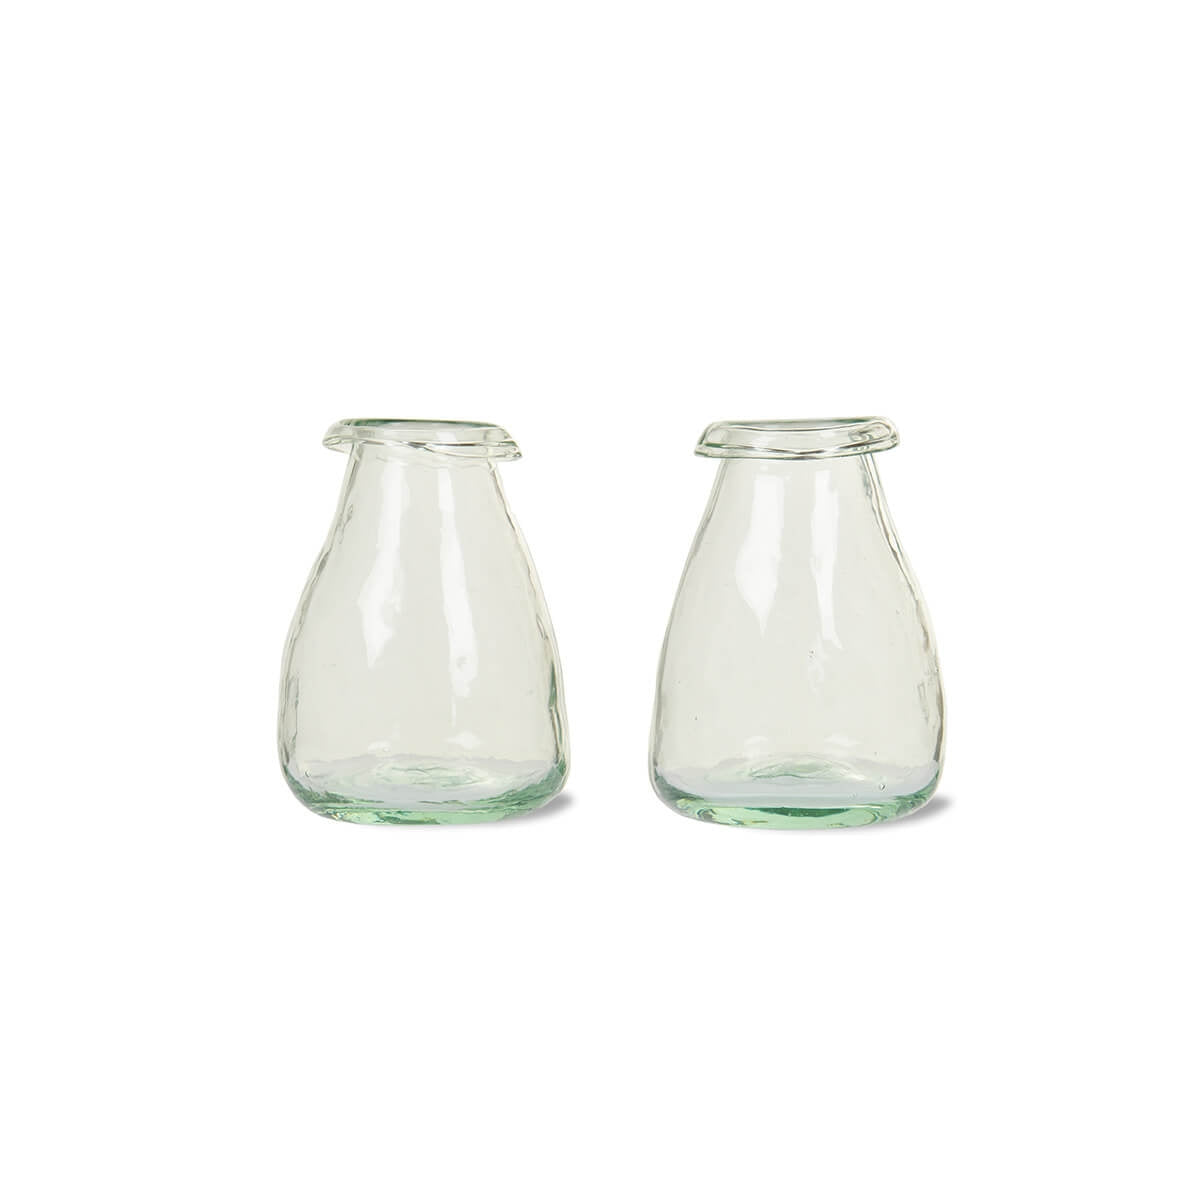 Set of Two Bud Vases